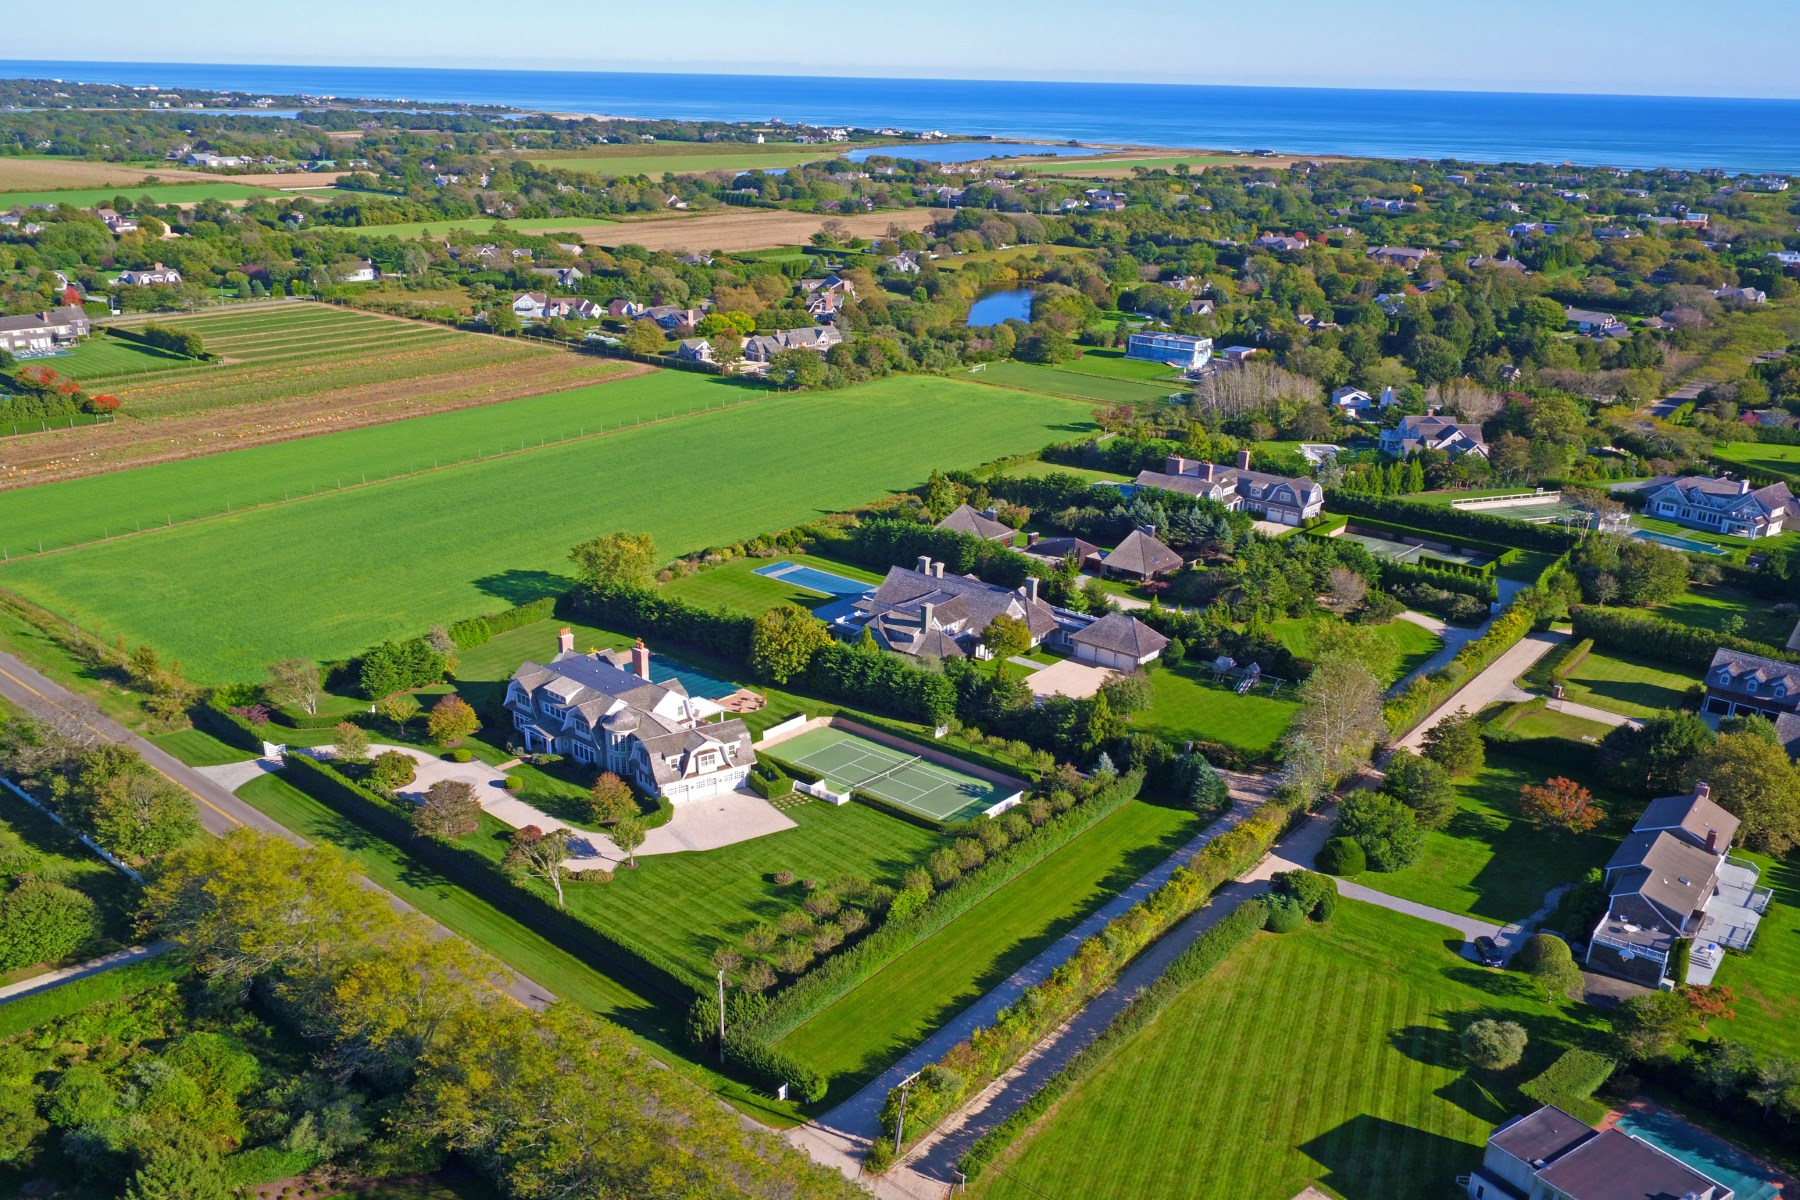 Single Family Home for Sale at Sagaponack Traditional with Tennis & 515 Parsonage Lane Sagaponack, New York, 11962 United States